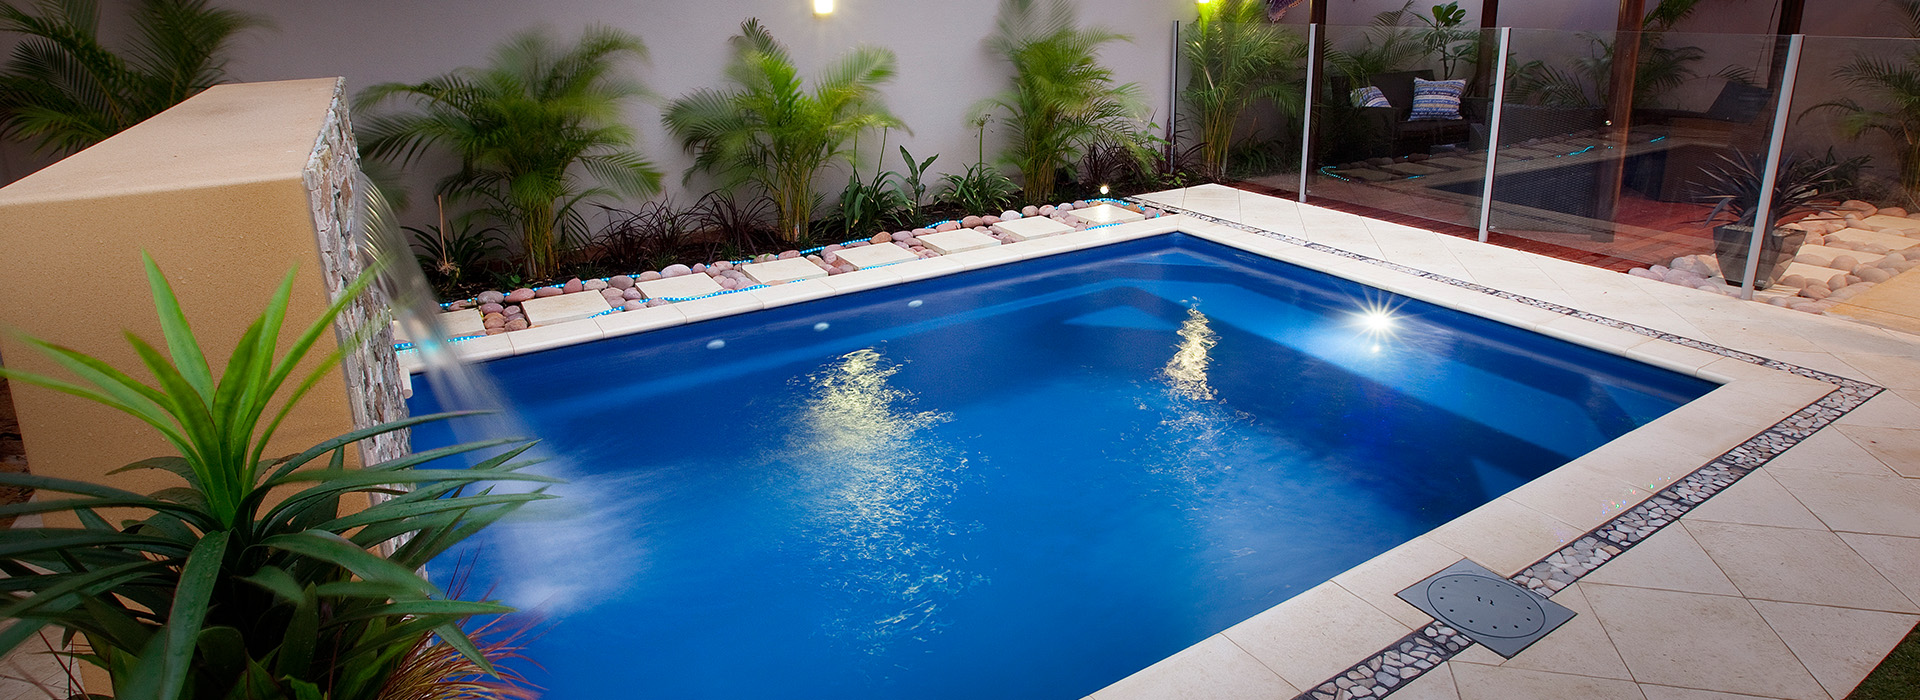 Fibreglass Swimming Pools Melbourne